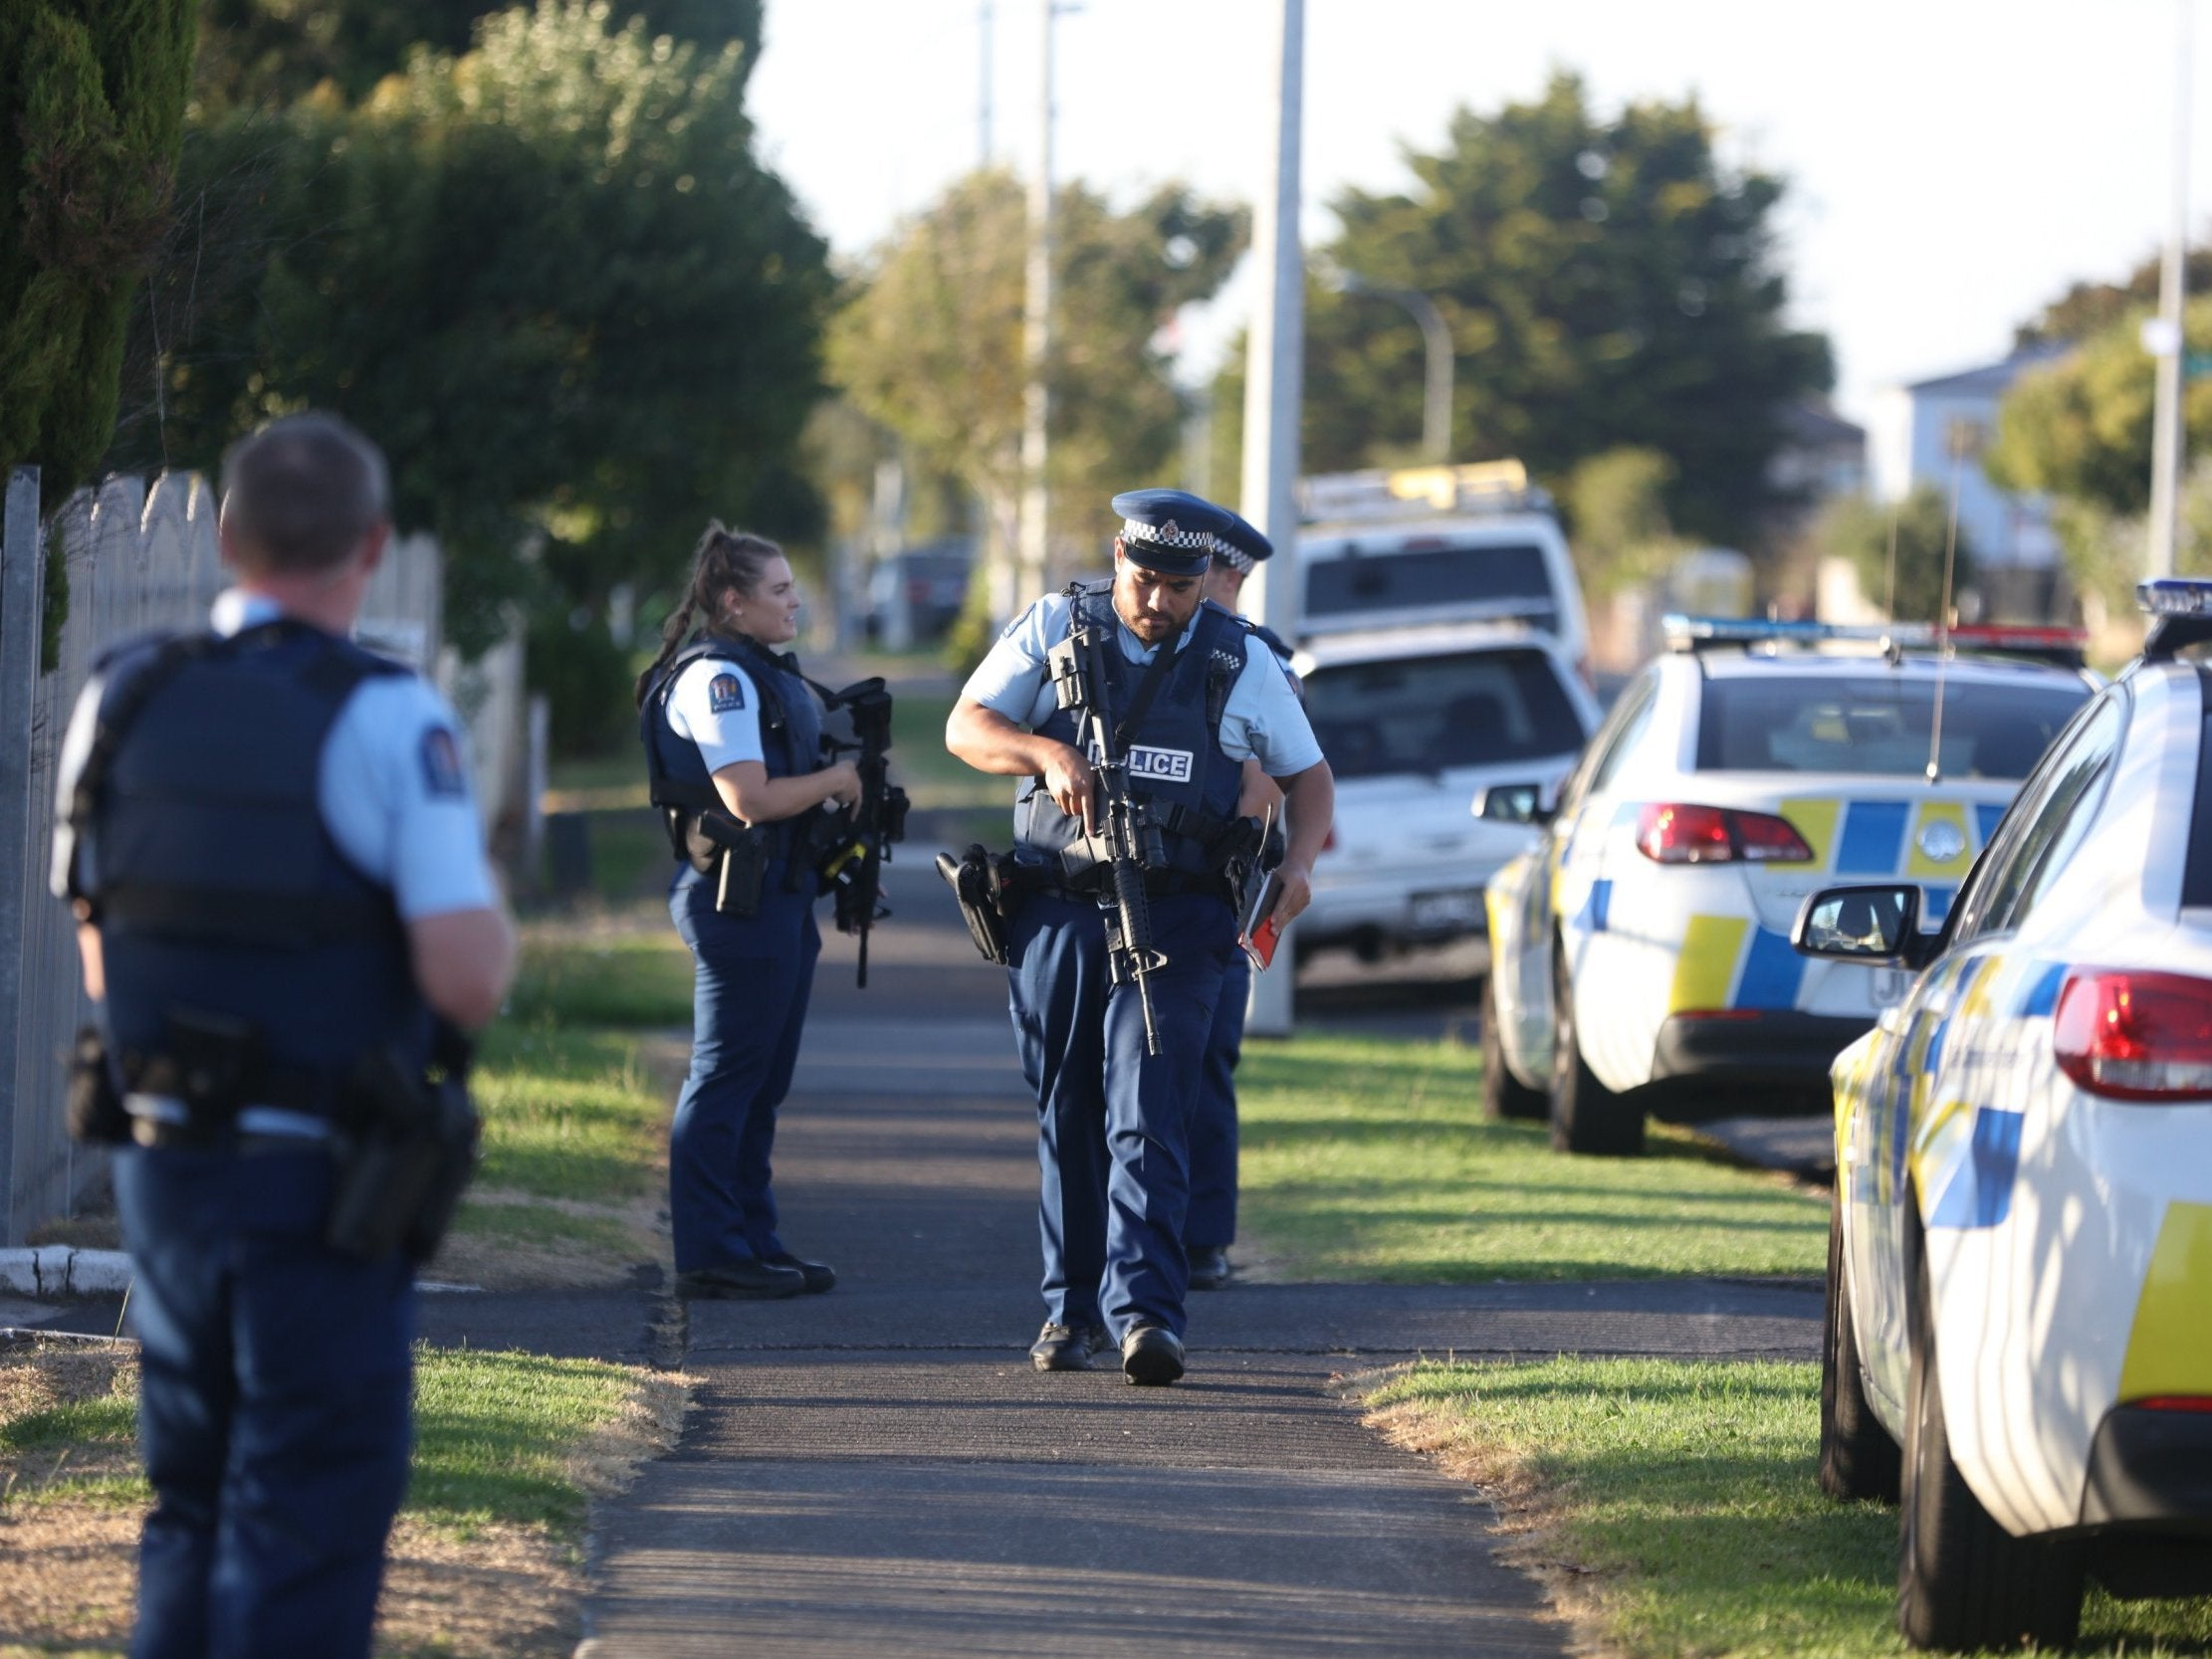 Shooting In Christchurch Video Twitter: New Zealand Shooting: Video Shows Police Arresting